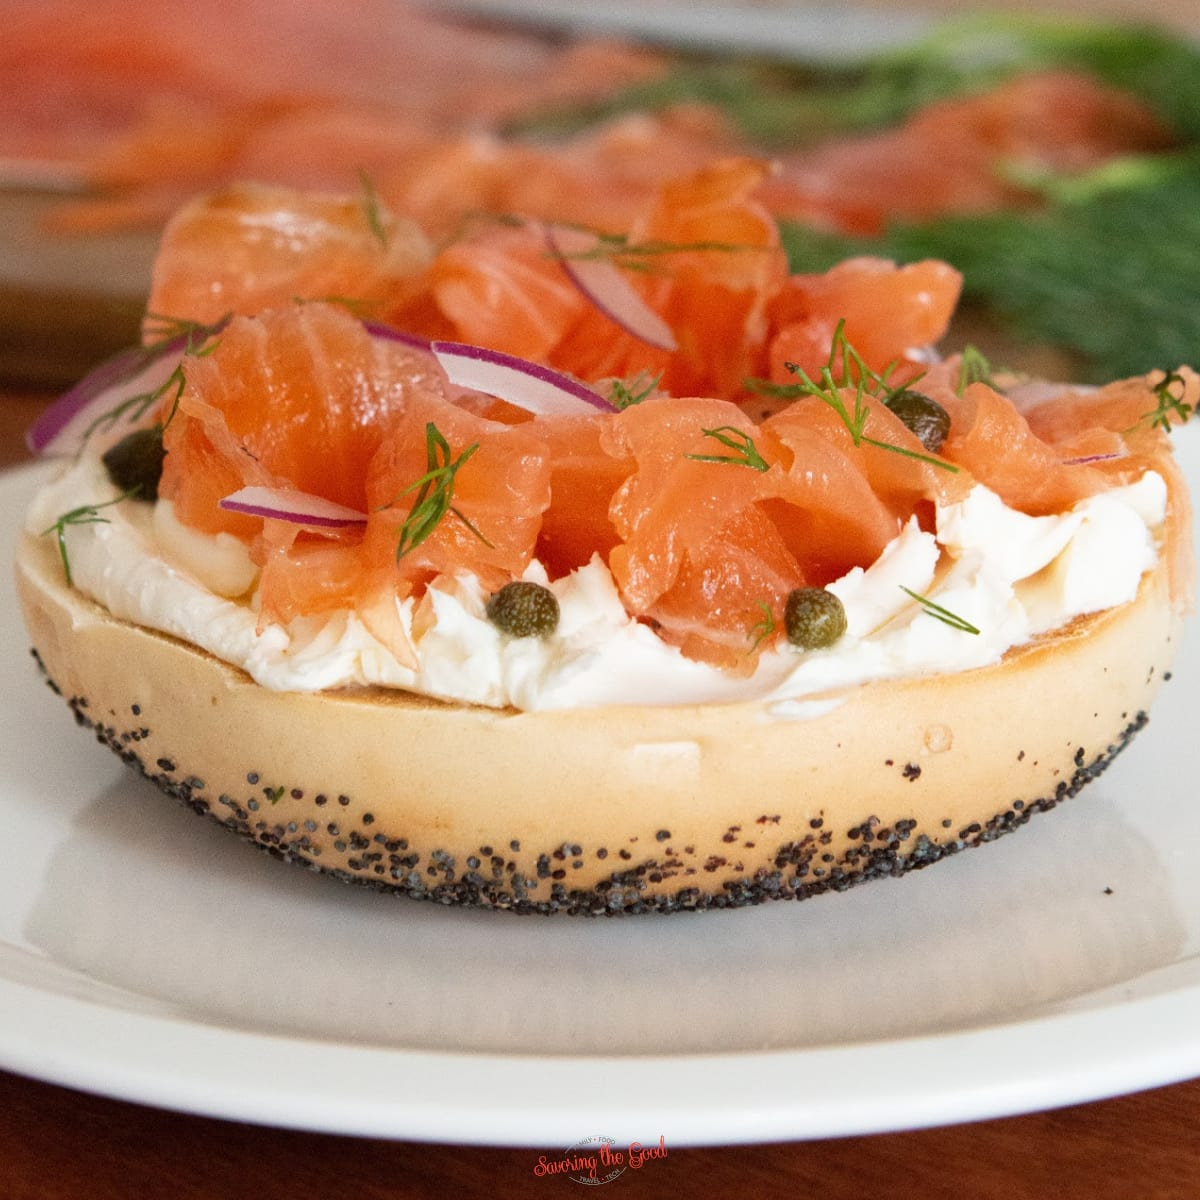 Salmon Lox Recipe featuring a toasted bagel, cream cheese, fresh dill, capers